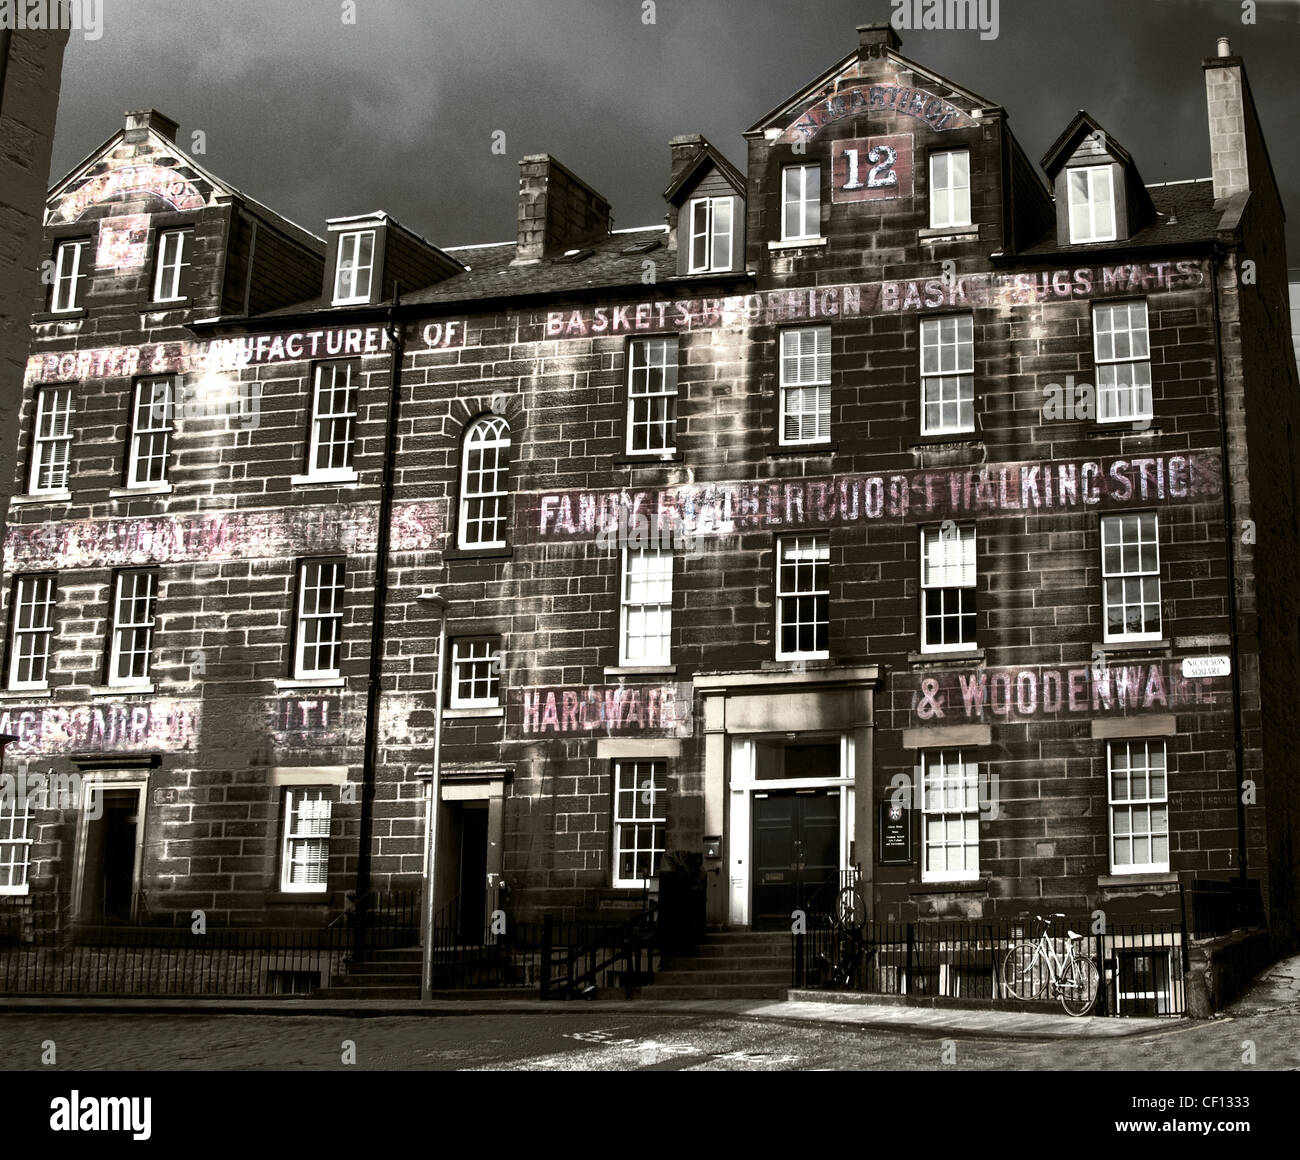 Old signwriting on university buildings at 12 Nicholson Square, Edinburgh City, Lothians, Scotland , UK - Stock Image